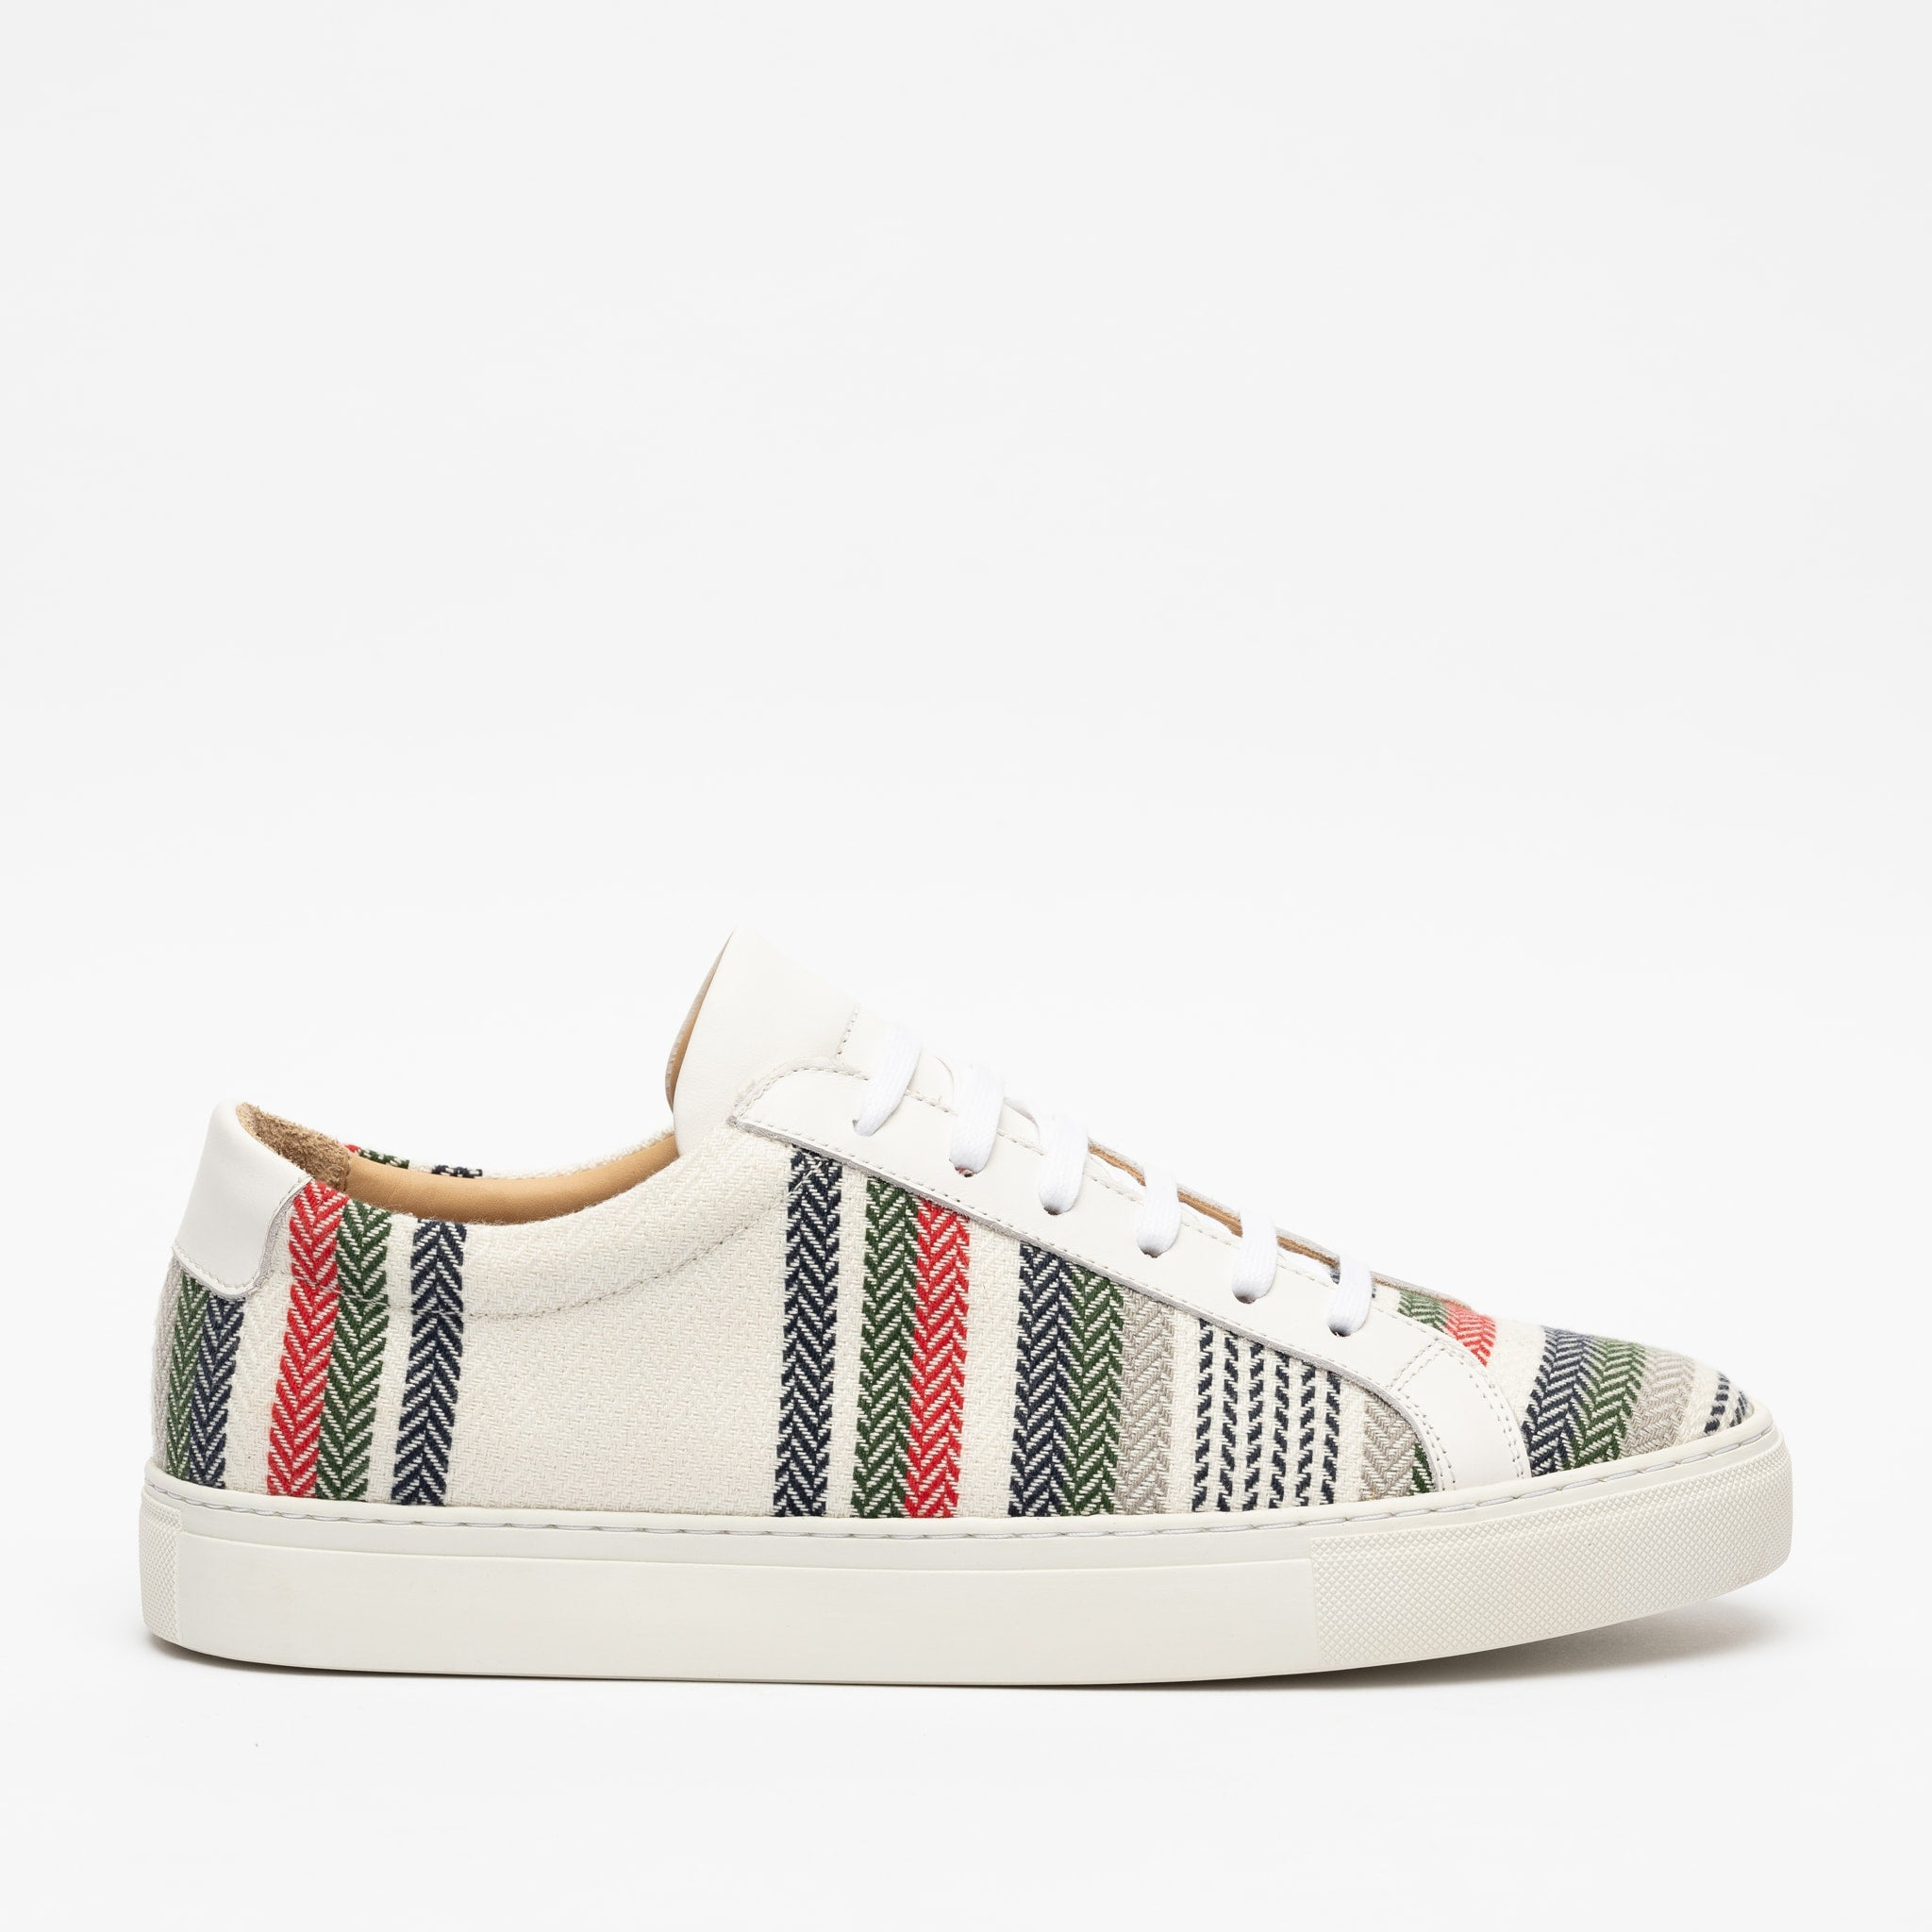 Sneaker in Stripes side view